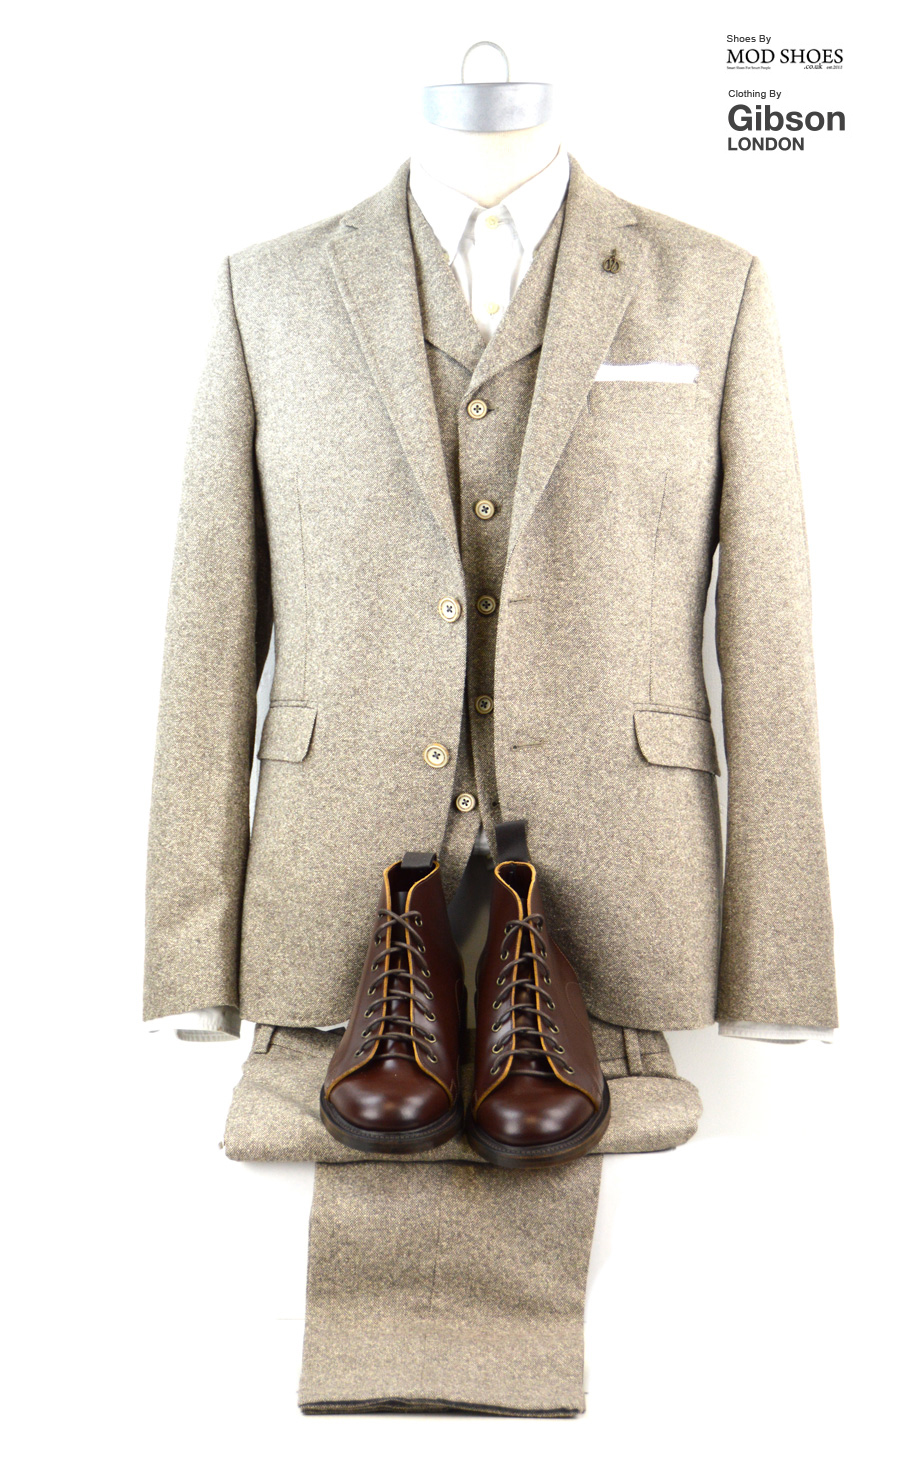 modshoes-brown-nut-monkey-boots-with-suit-from-gibson-clothing